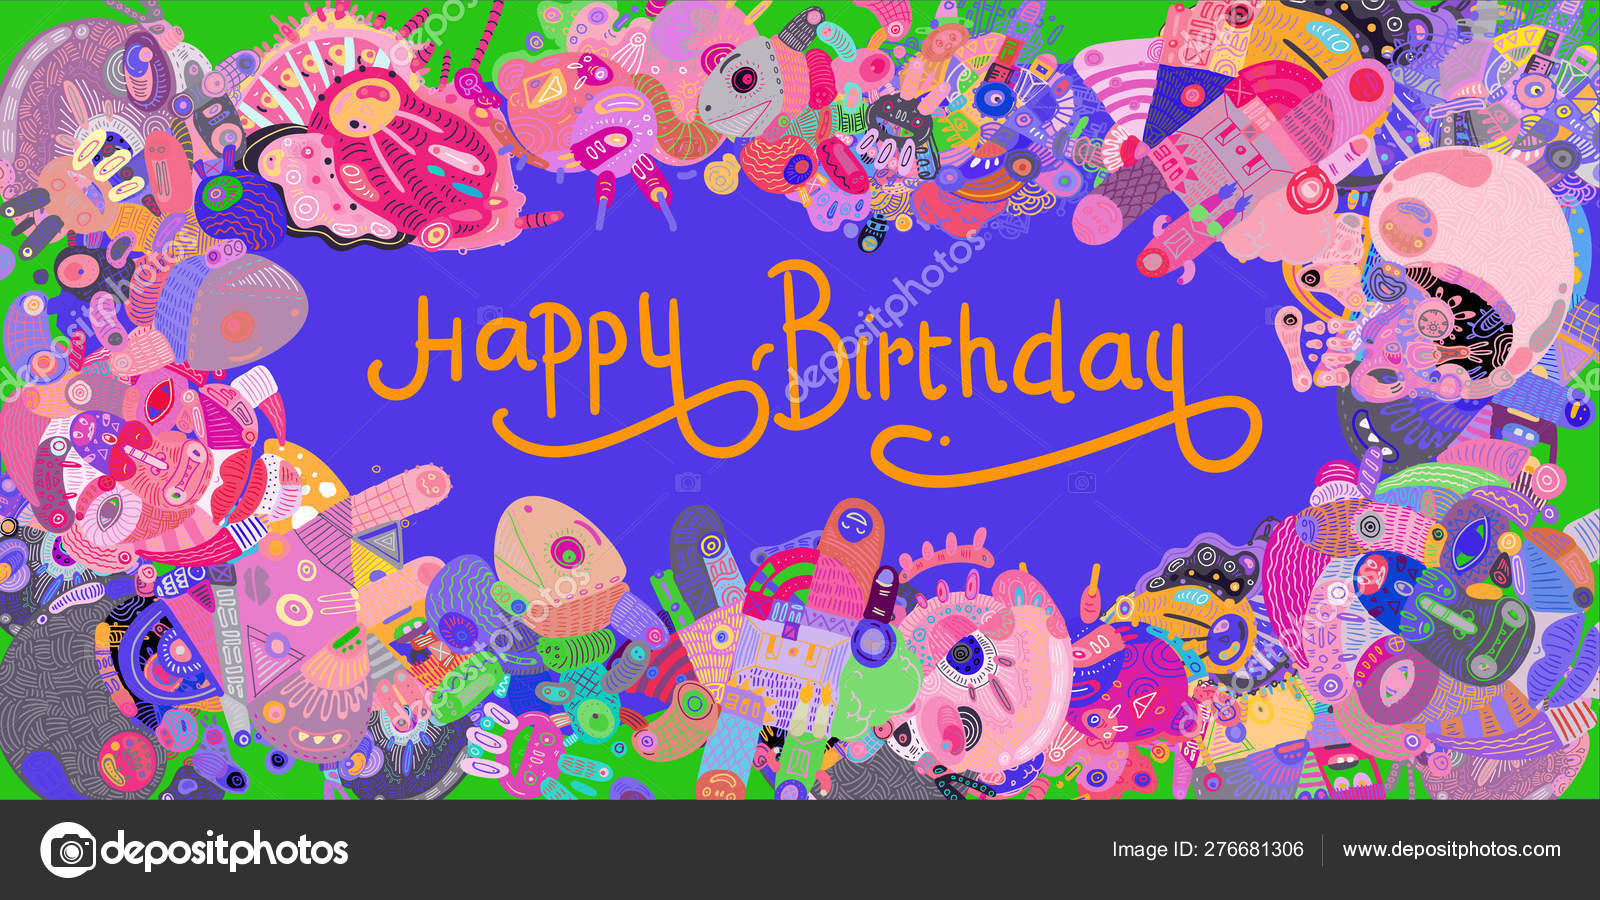 Happy Birthday Greeting Card Abstract Doodle Illustration Background